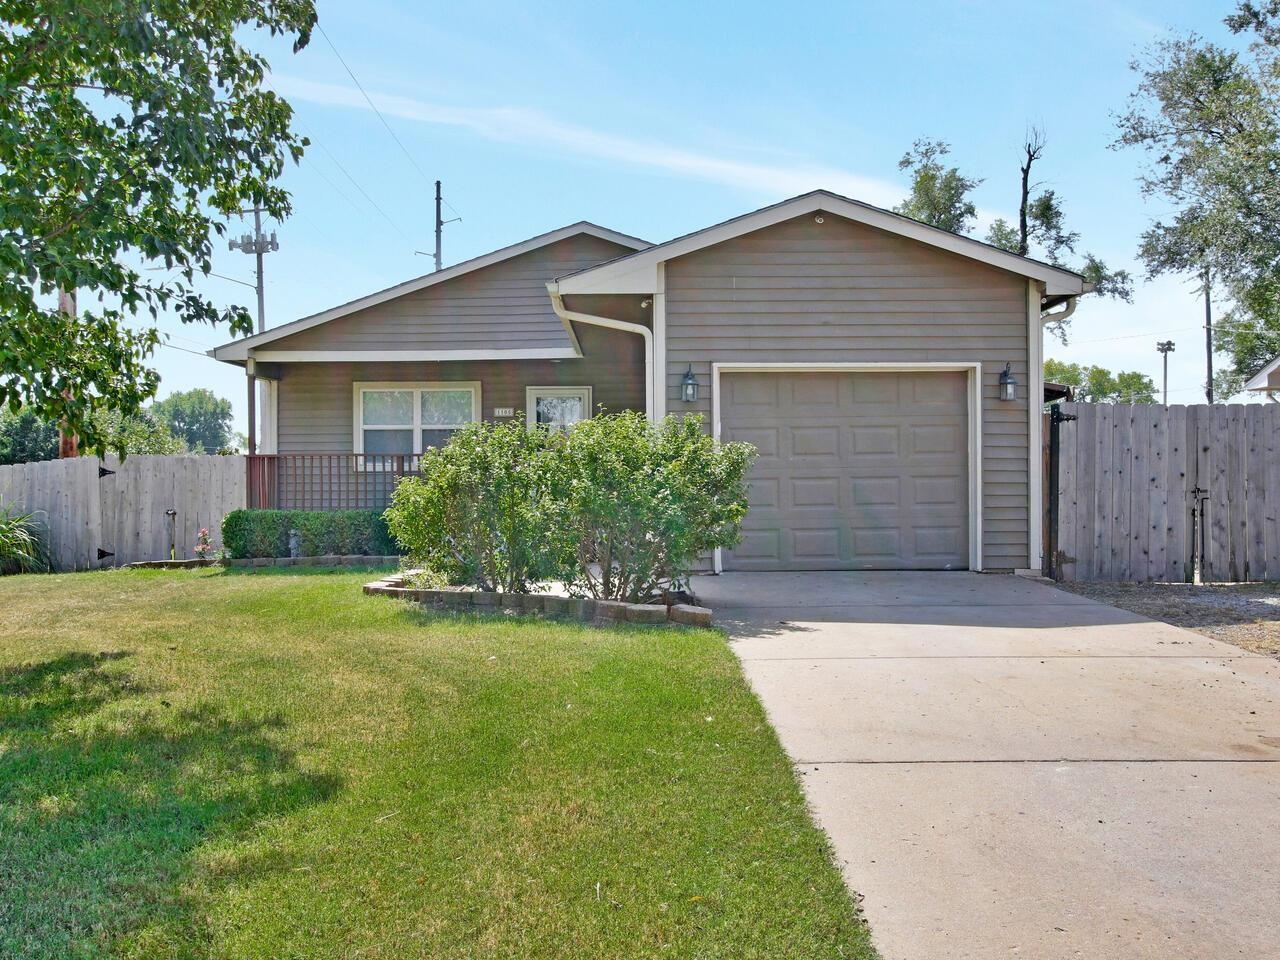 Welcome home sweet home to this six-bedroom ranch located in the heart of south Wichita. An attached